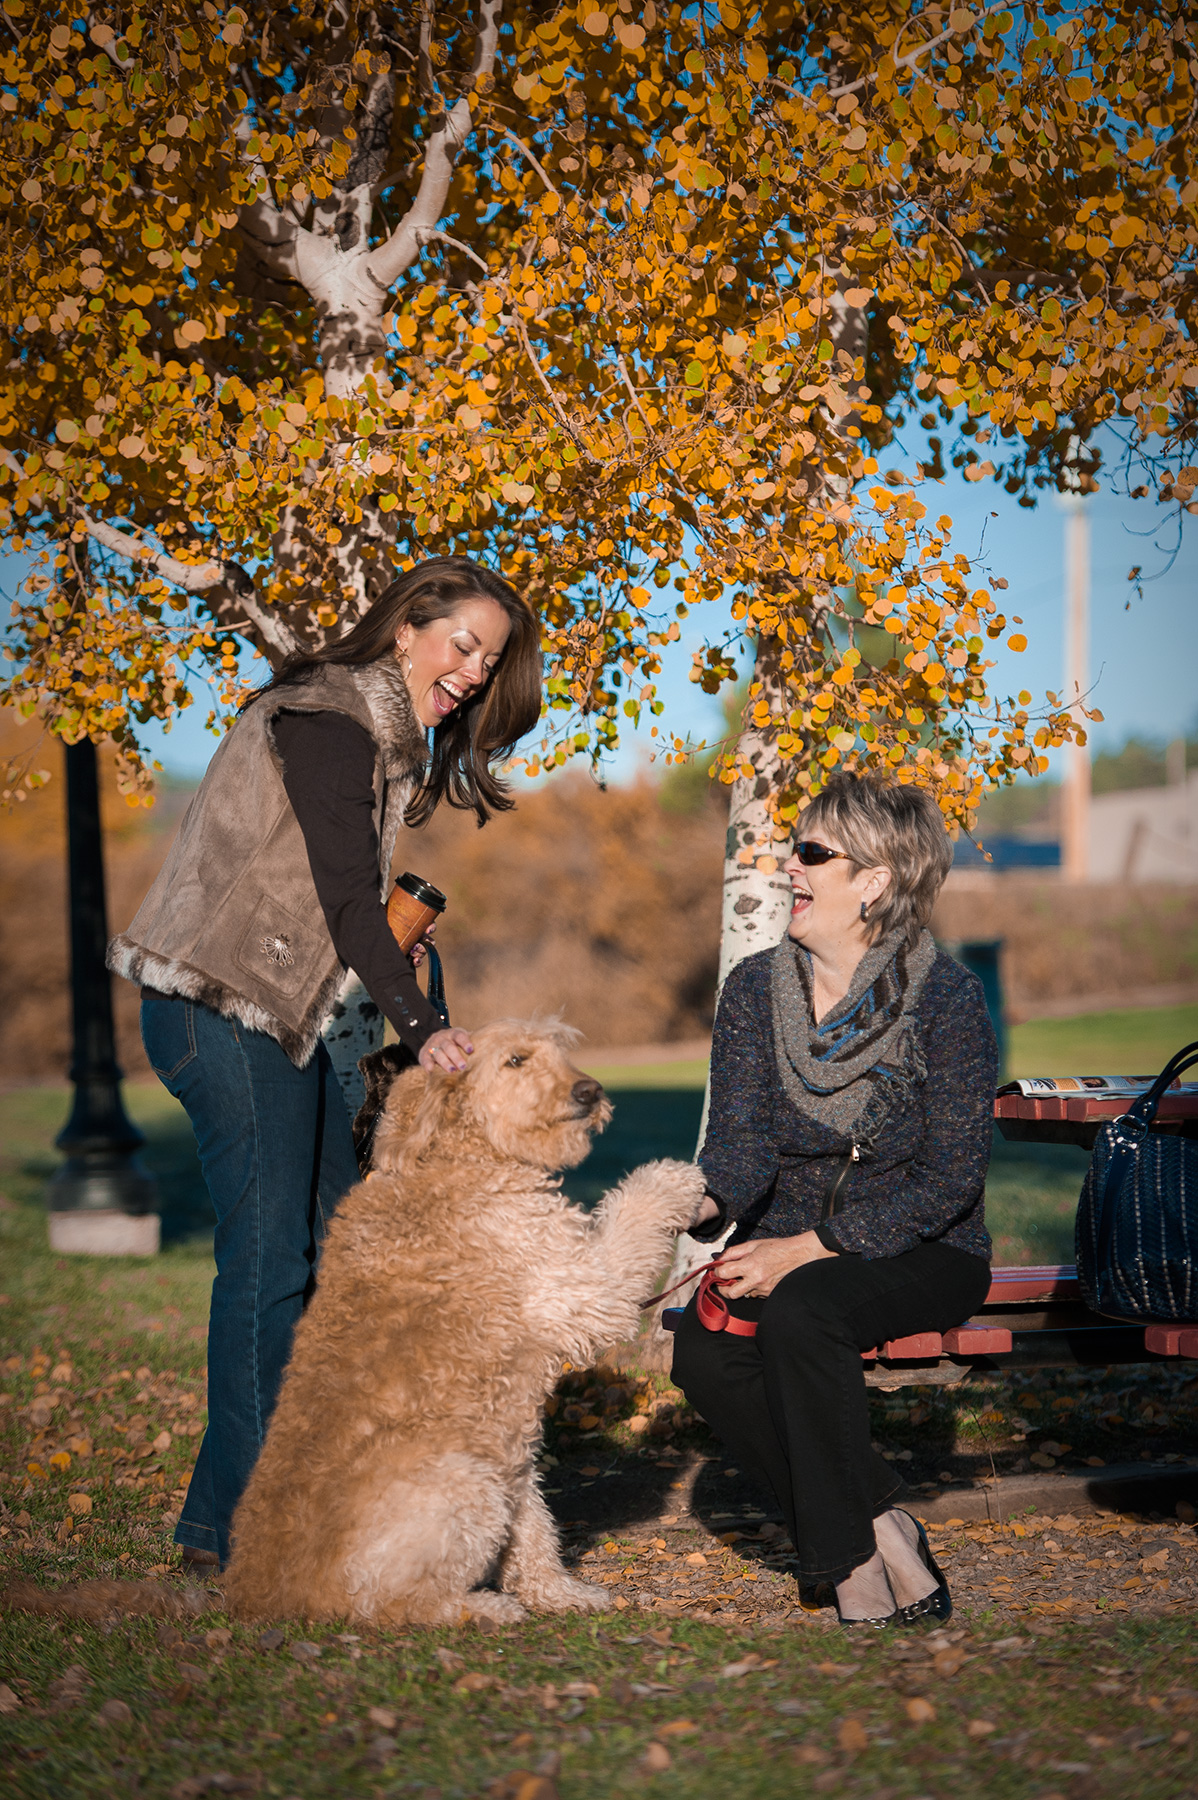 Lifestyle image of two woman and a dog in a park